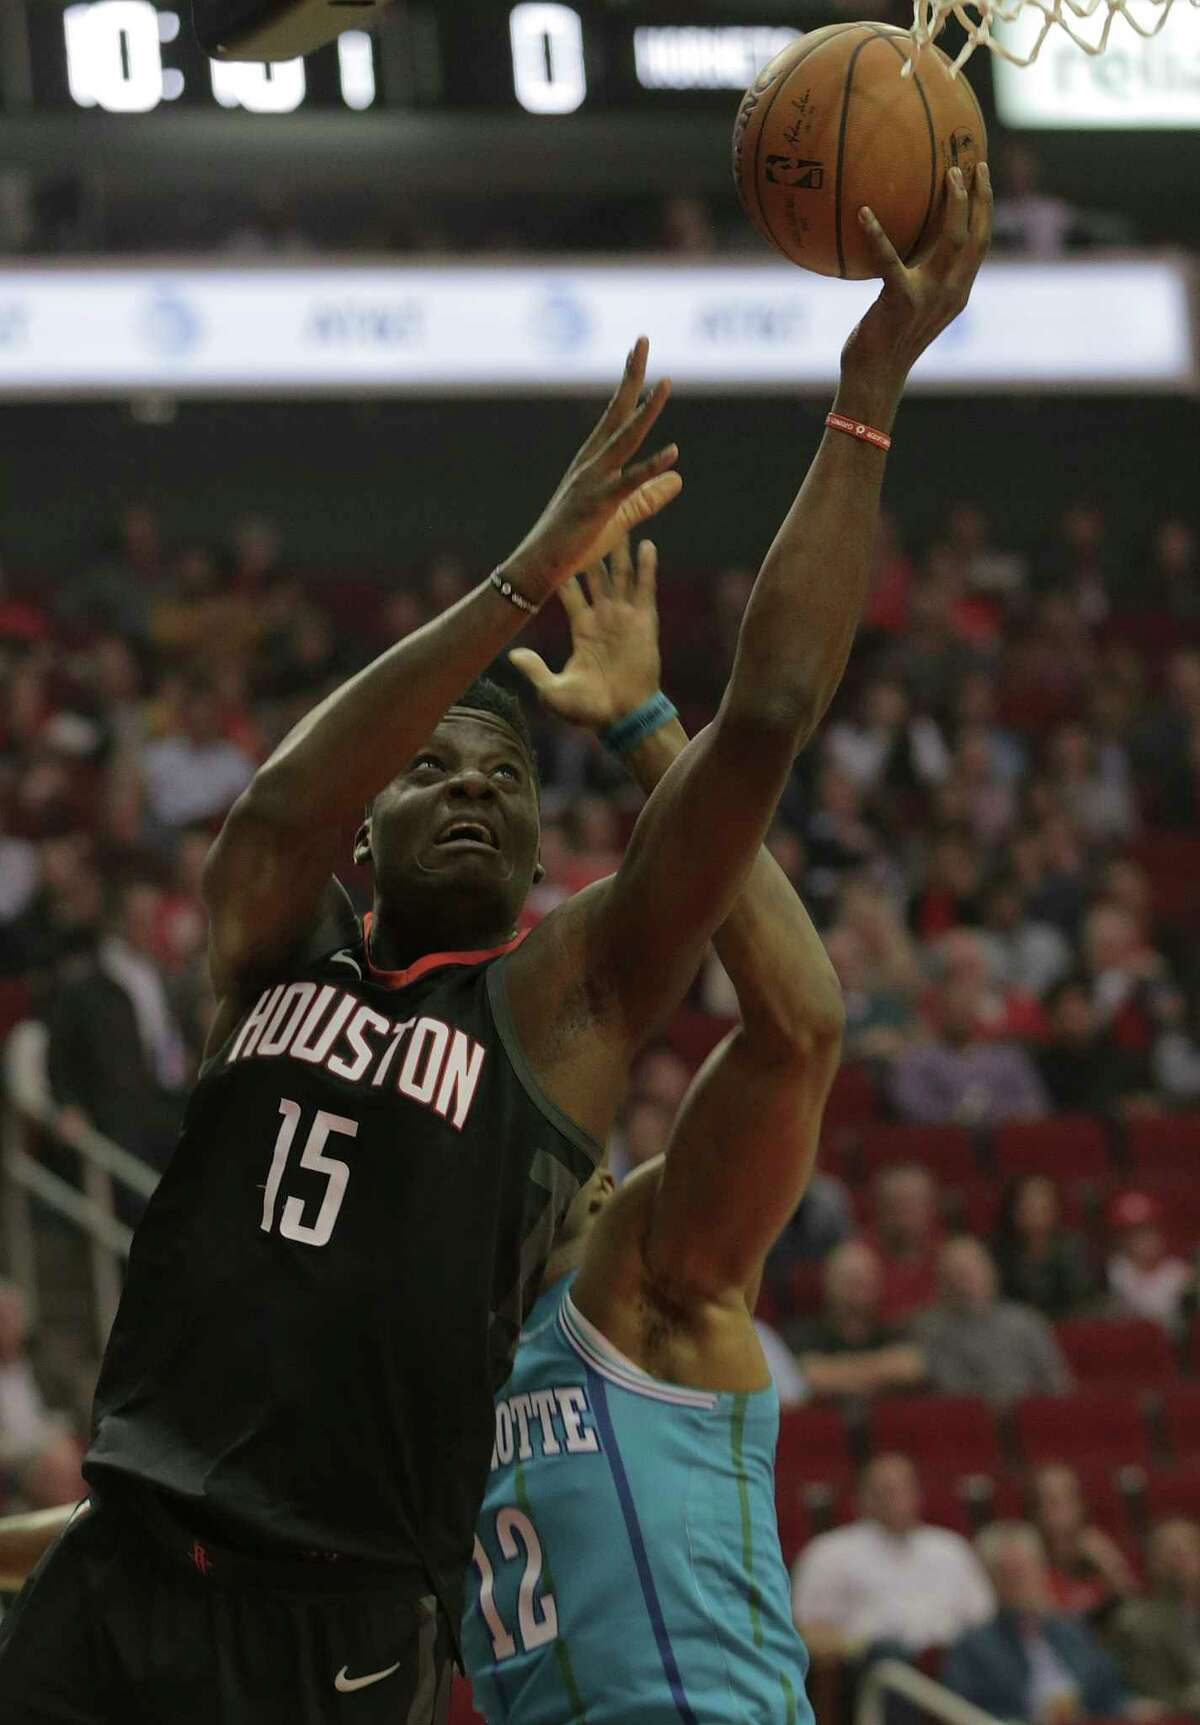 Houston Rockets center Clint Capela (15) drives to the basket around Charlotte Hornets center Dwight Howard (12) in the first quarter at the Toyota Center on Wednesday, Dec. 13, 2017, in Houston.